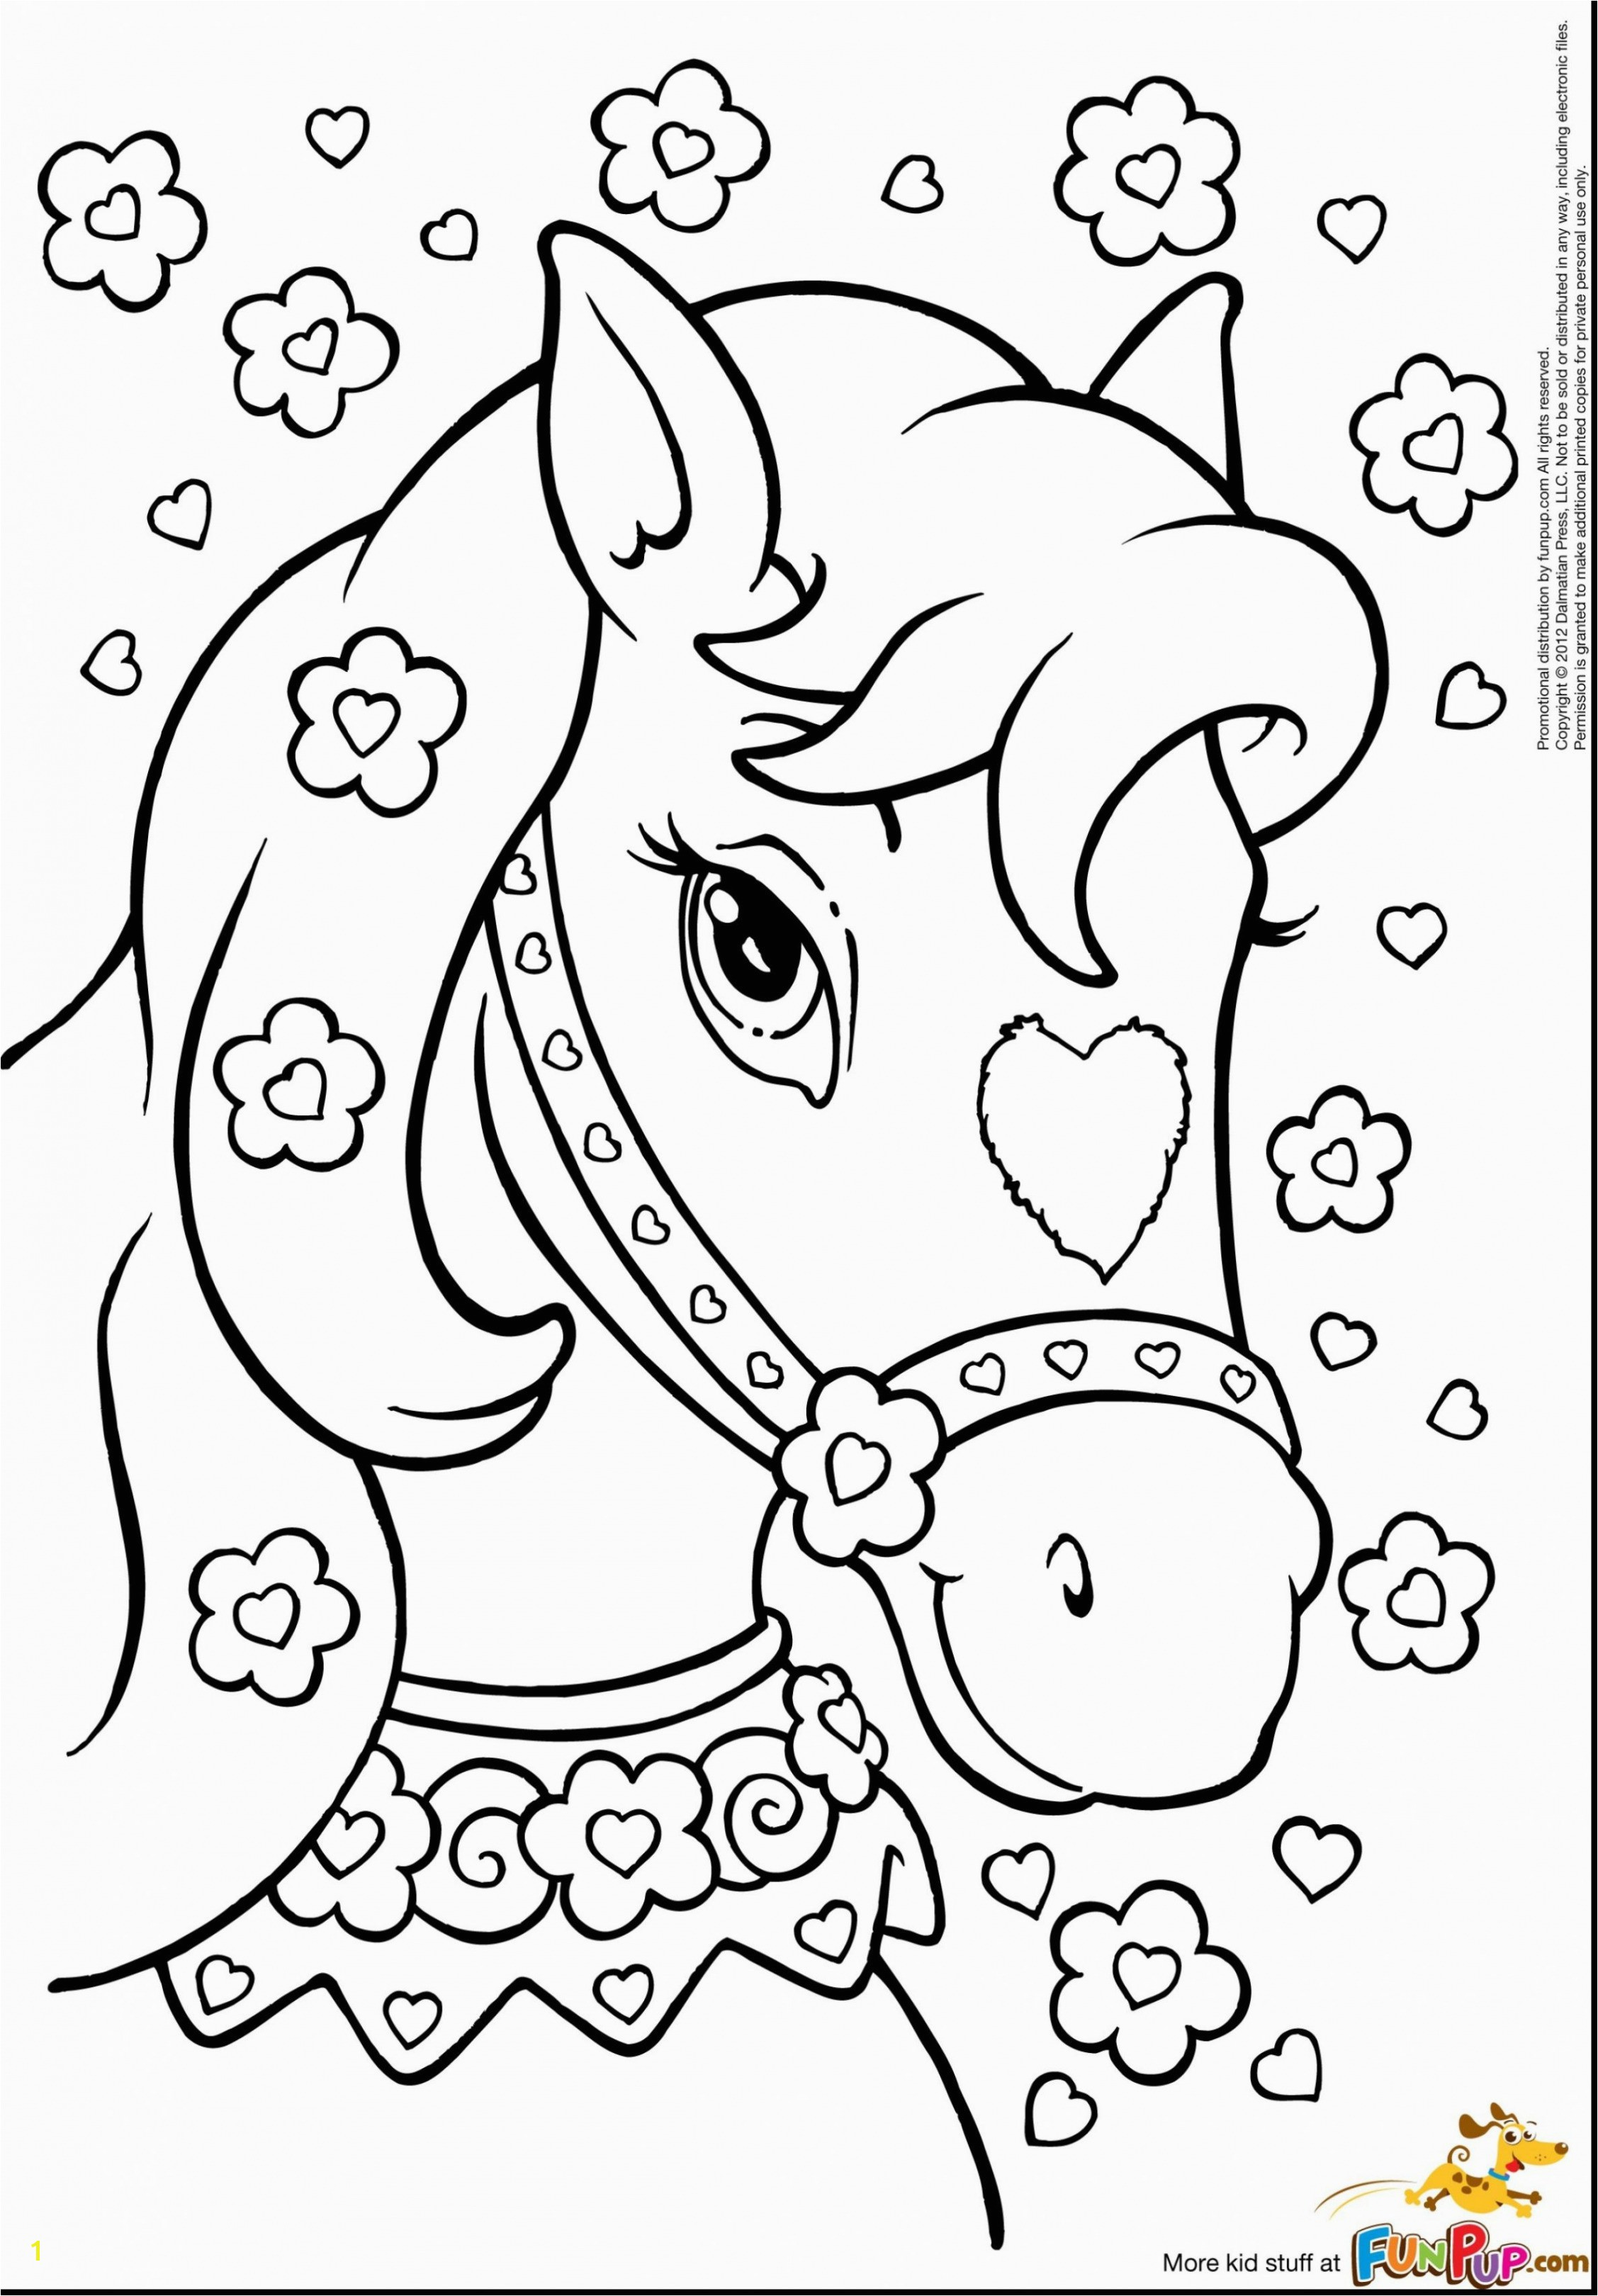 13 New Coloring Pages Elvis Presley